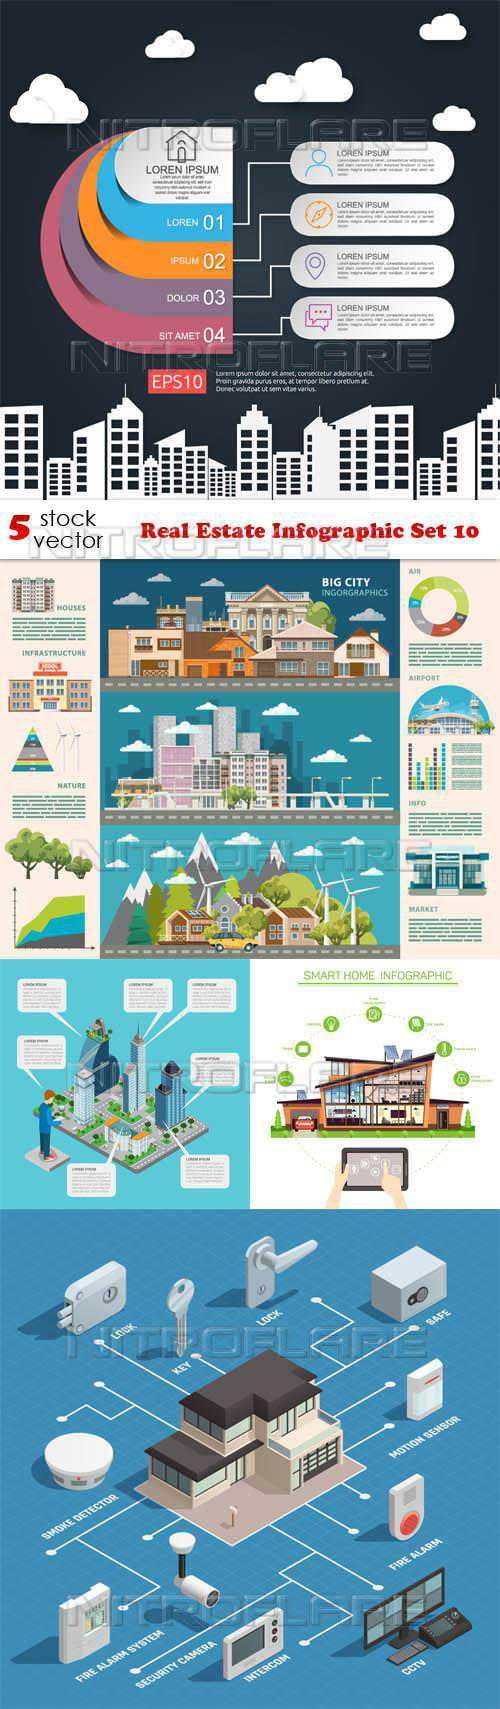 Real Estate Infographic Set 10